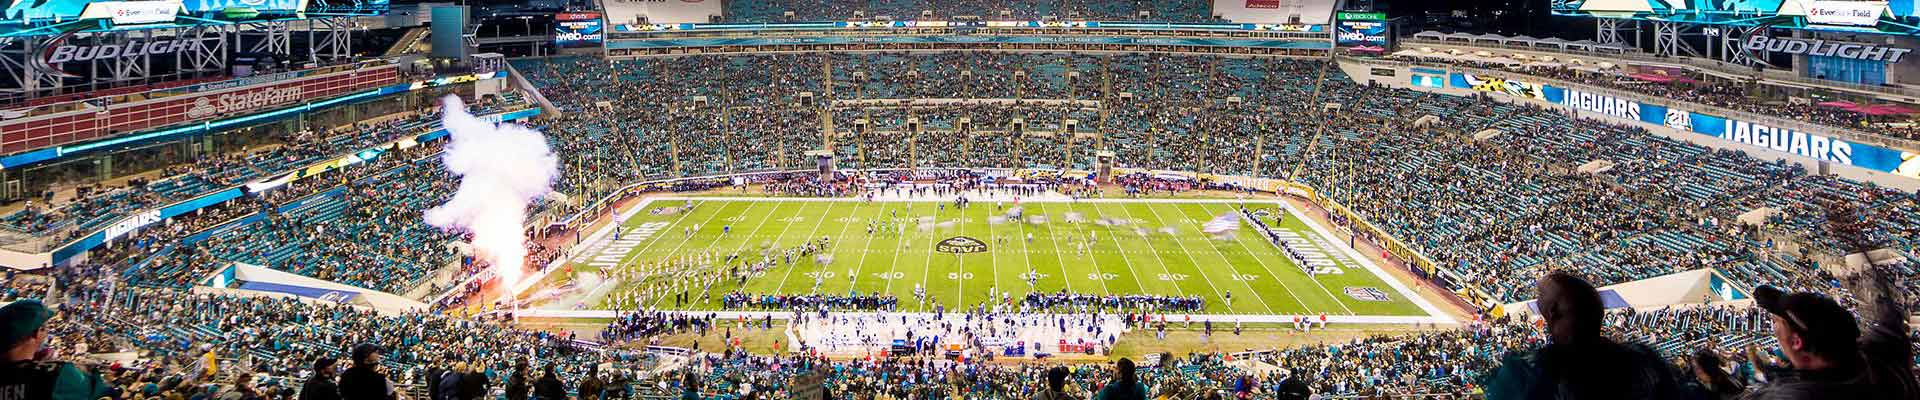 Jacksonville Jaguars Travel and Vacation Packages